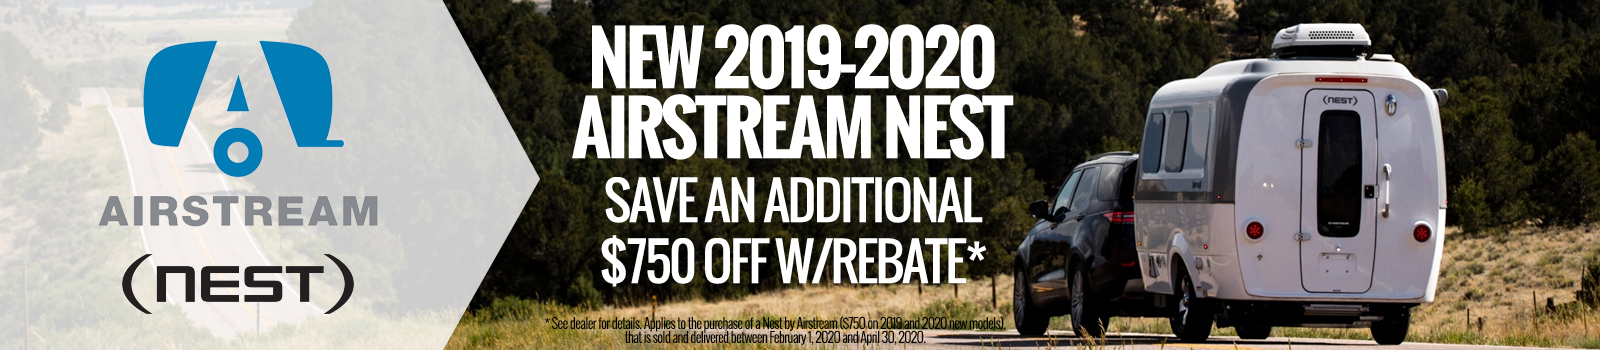 Airstream Nest rebate